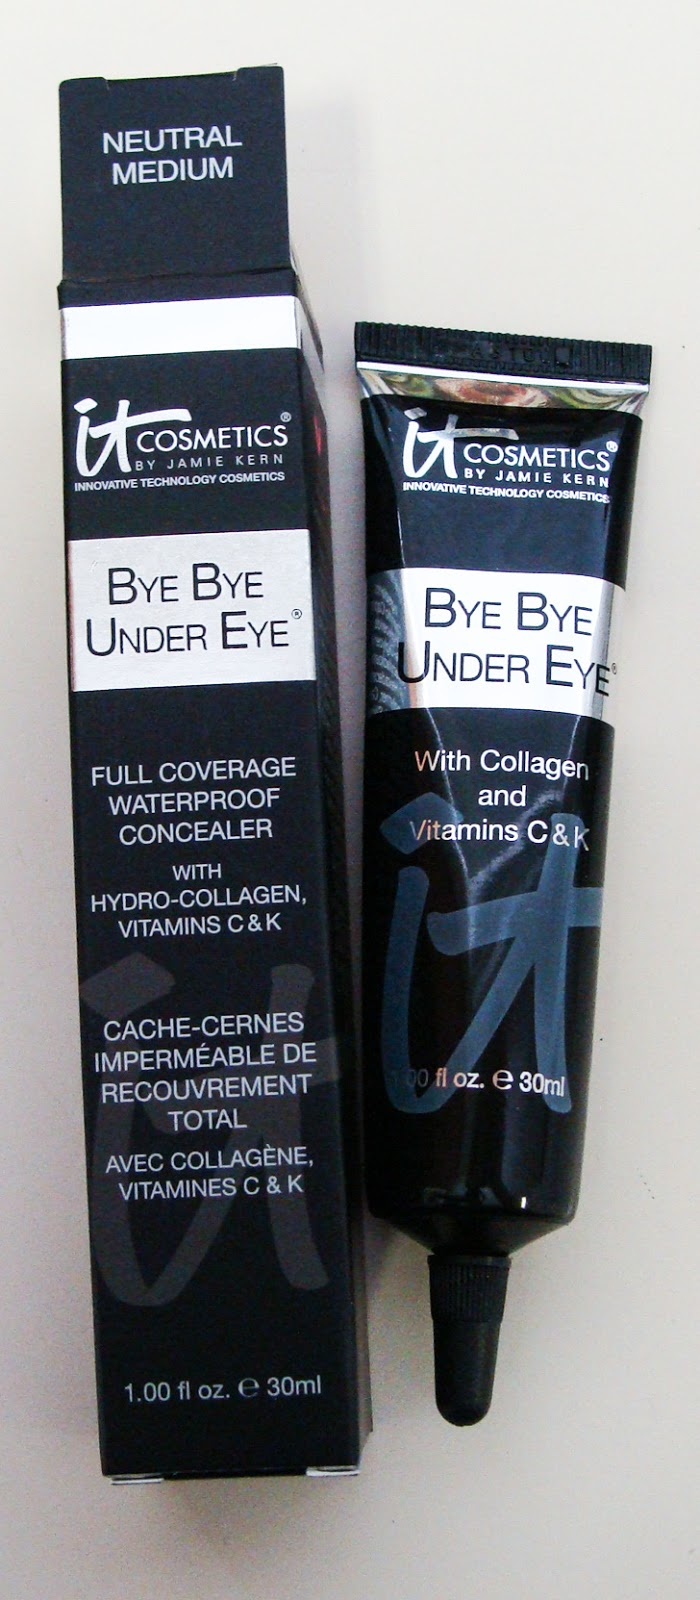 it cosmetics, bye bye under eye, hello light, vitality stain gloss, YBBB, qvc, your most beautiful you, first impression, first impressions, cosmetics, makeup, bblogger, review, anti aging